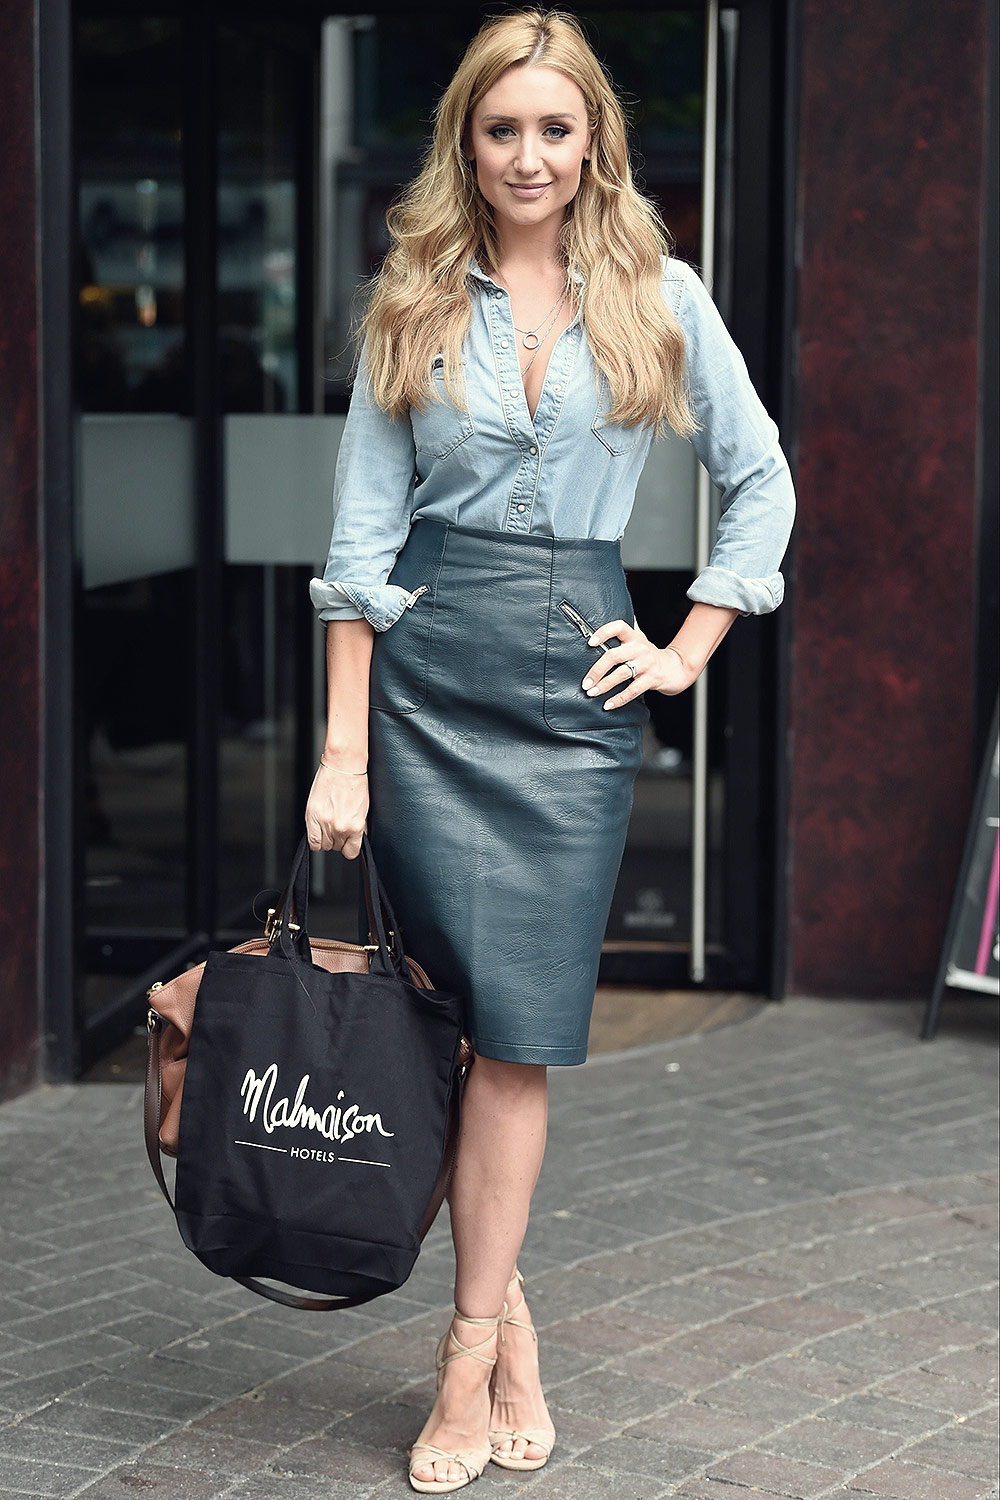 Catherine Tyldesley seen at Malmaison hotel